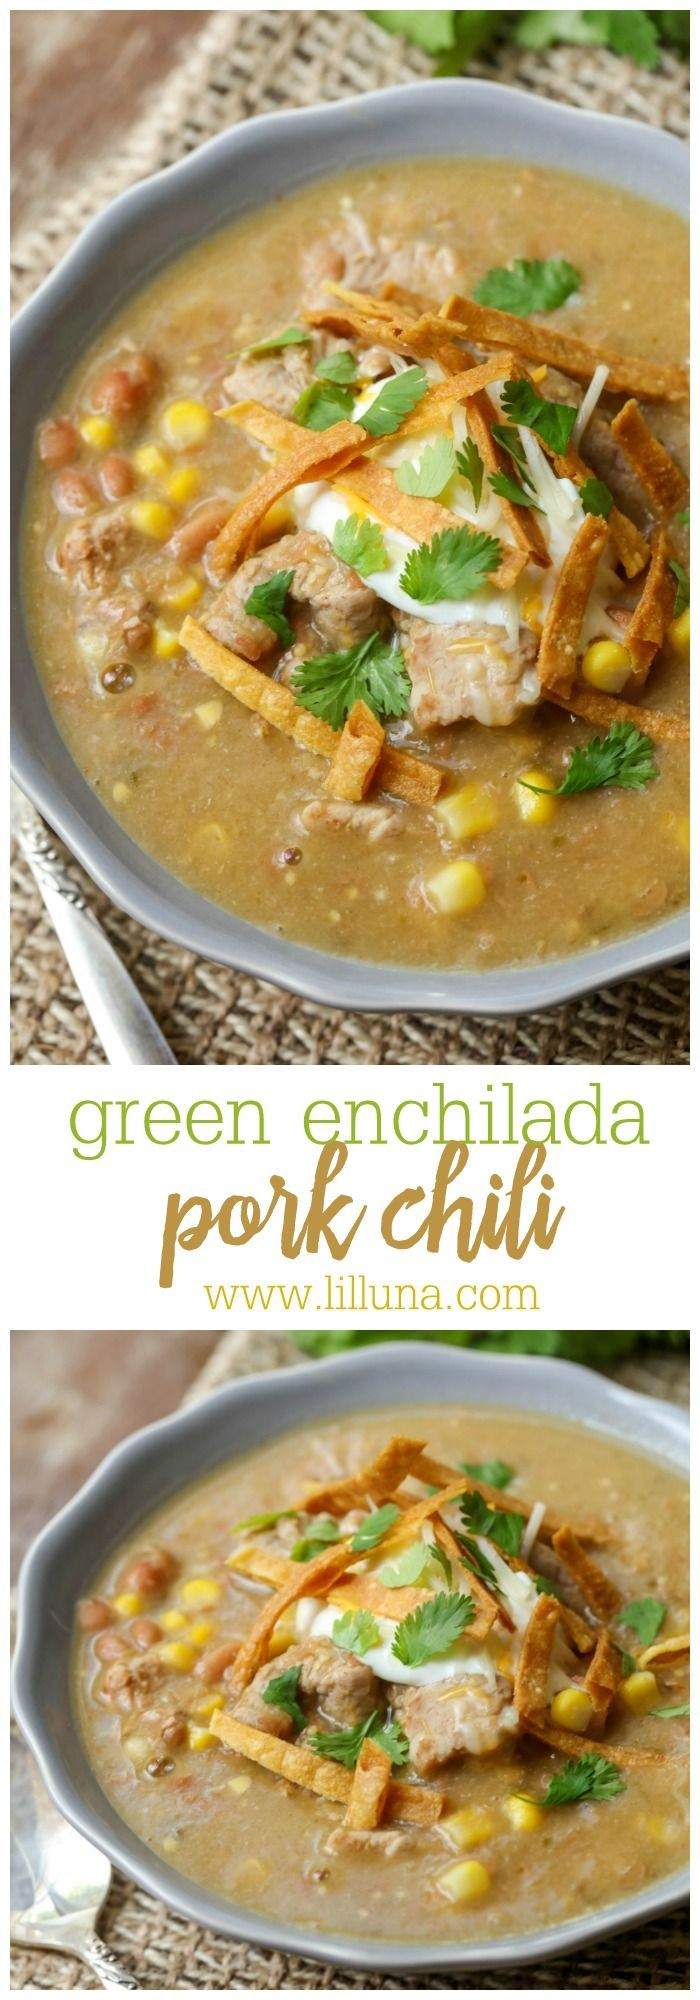 Delicious Green Enchilada Pork Chili filled with beans, corn, pork, broth, salsa…